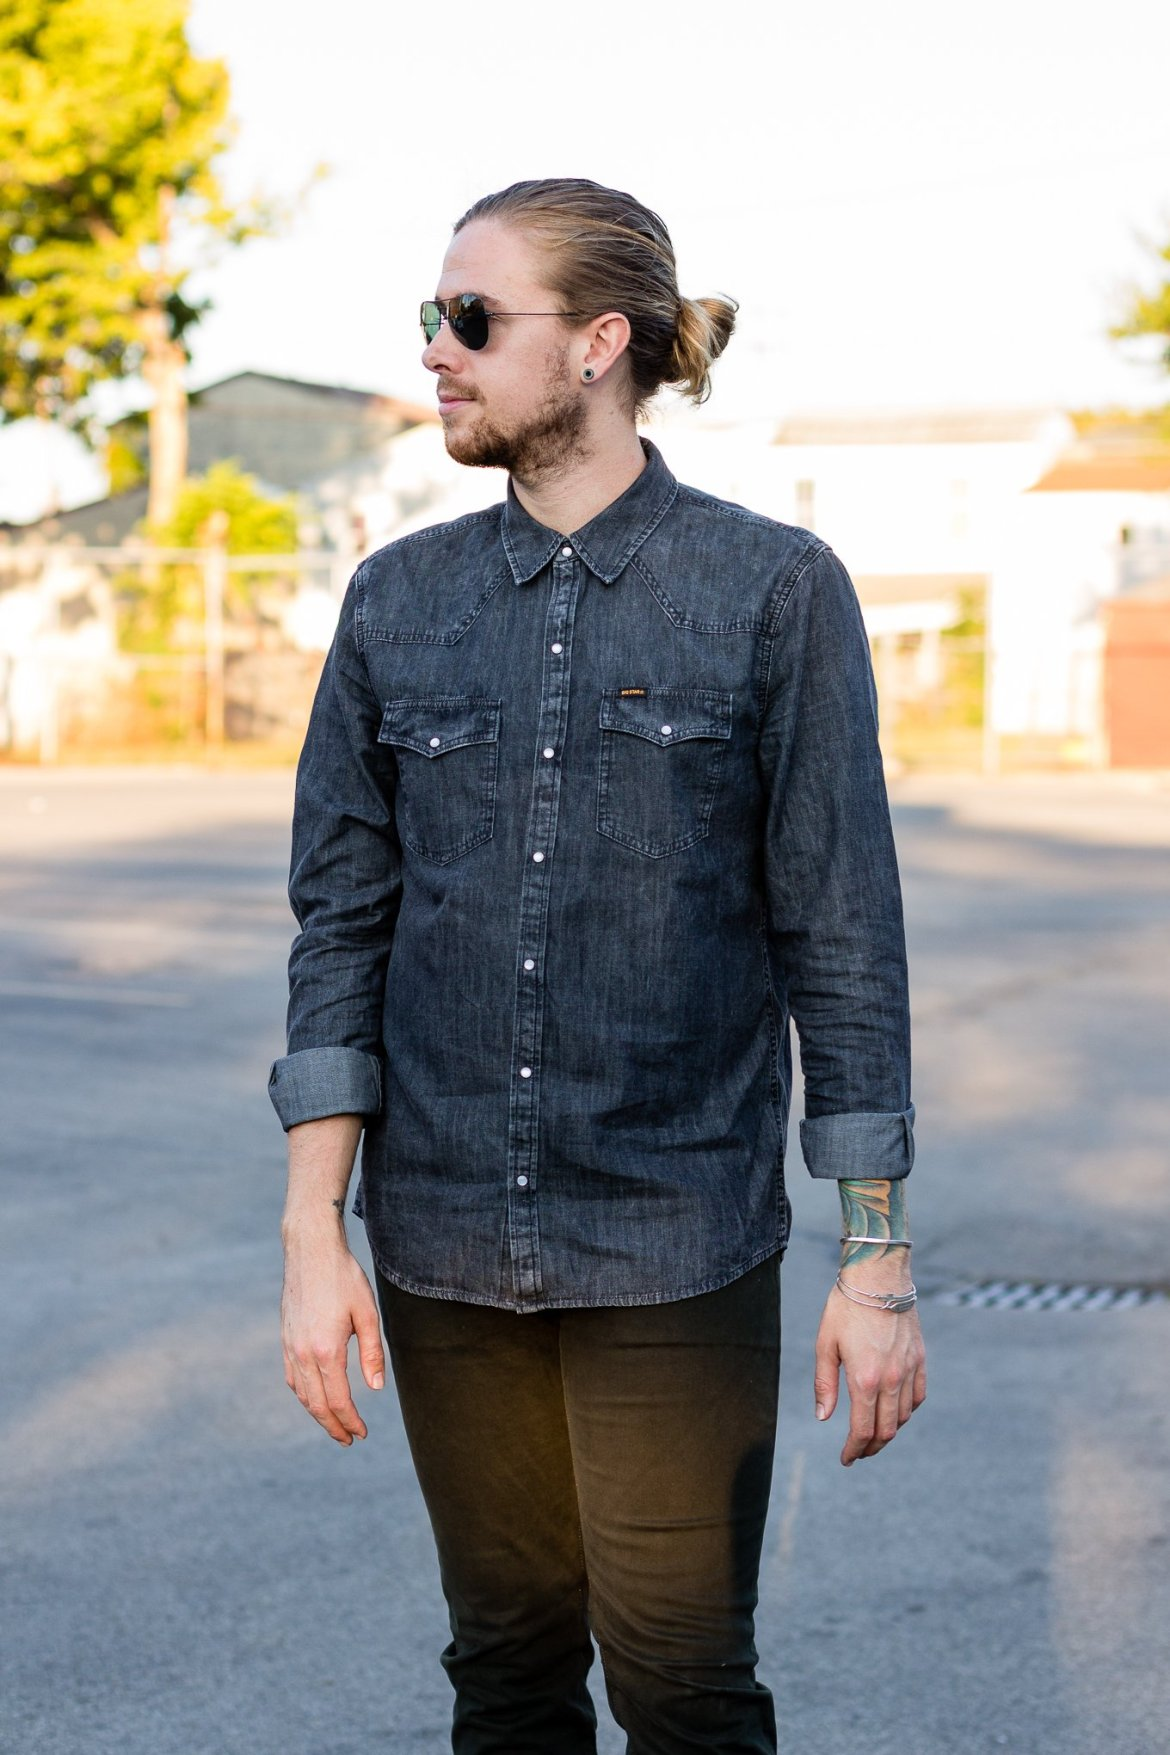 Big Star Chambray Shirt + Olive Division Pants on thekentuckygent.com.